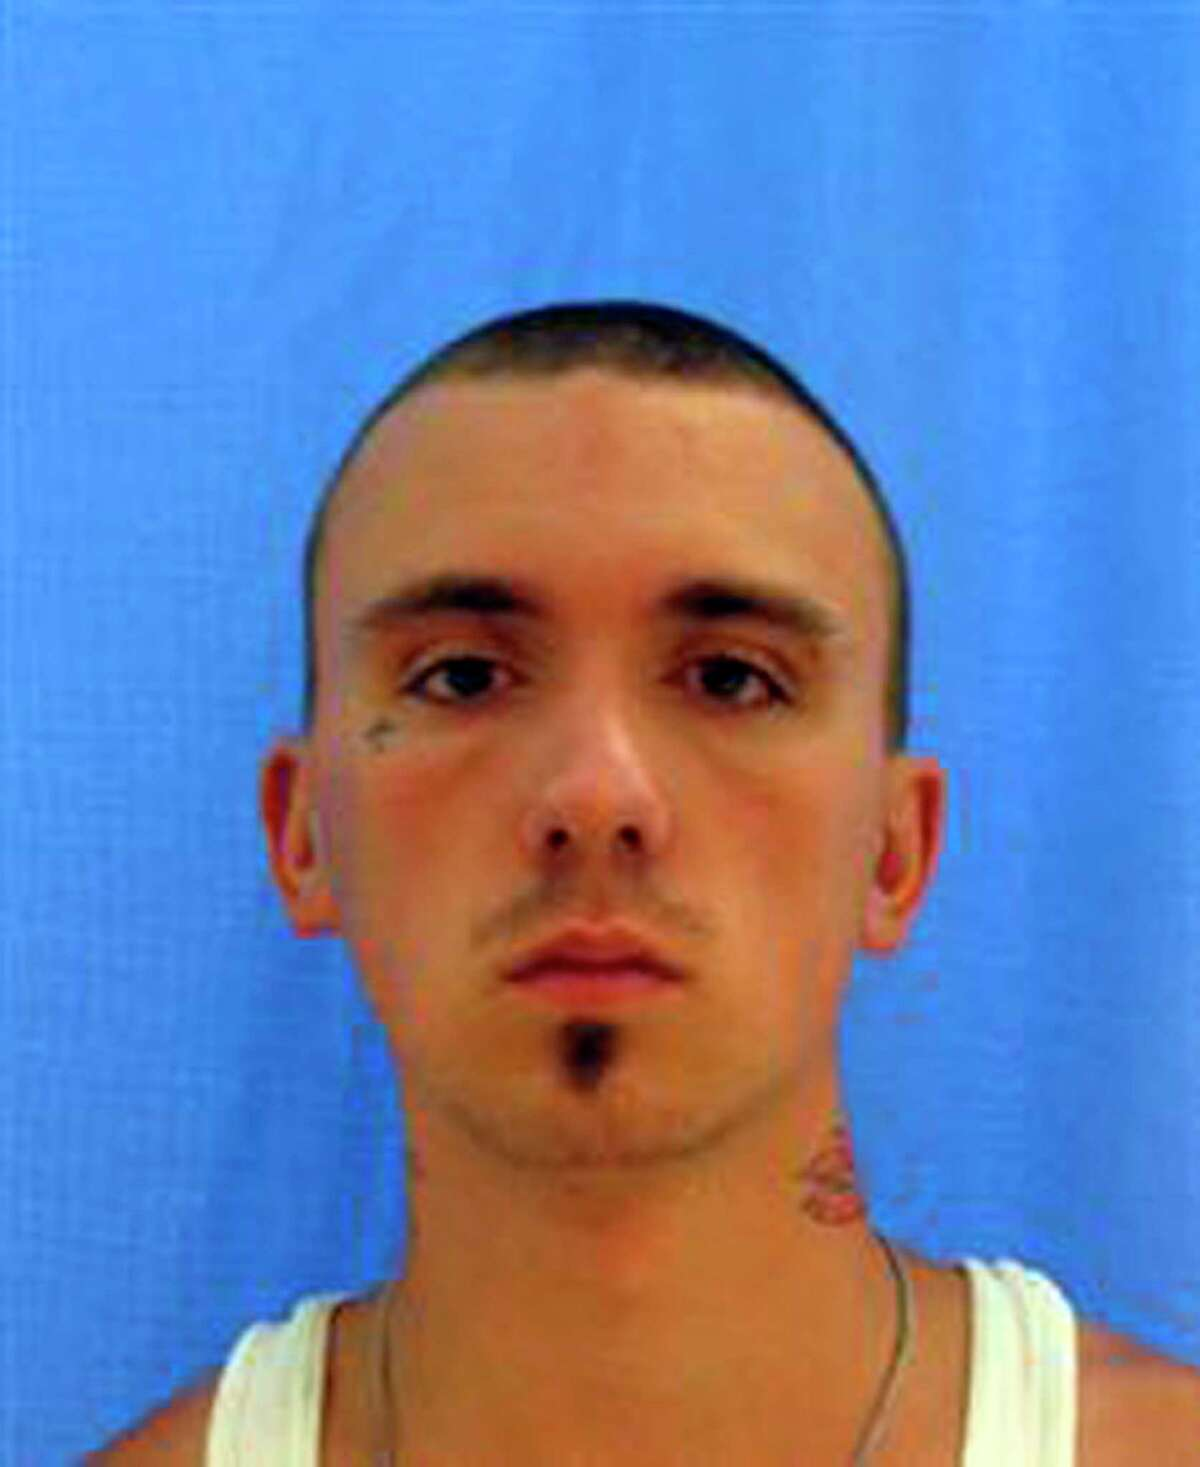 This undated photo provided by the Salt Lake County Sheriff's office shows Austin Boutain. Authorities are searching for Boutain, who is a suspect in the fatal shooting and attempted carjacking near the University of Utah on Monday, Oct. 30, 2017. (Salt Lake County Sheriff's Office via AP)